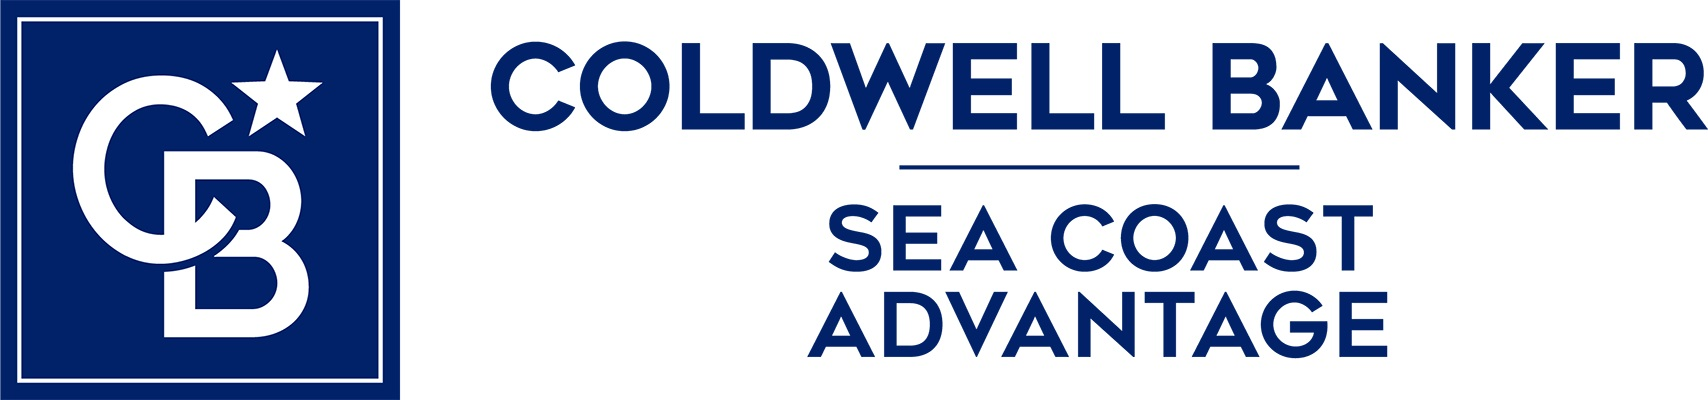 Beth Dudley - Coldwell Banker Sea Coast Advantage Realty